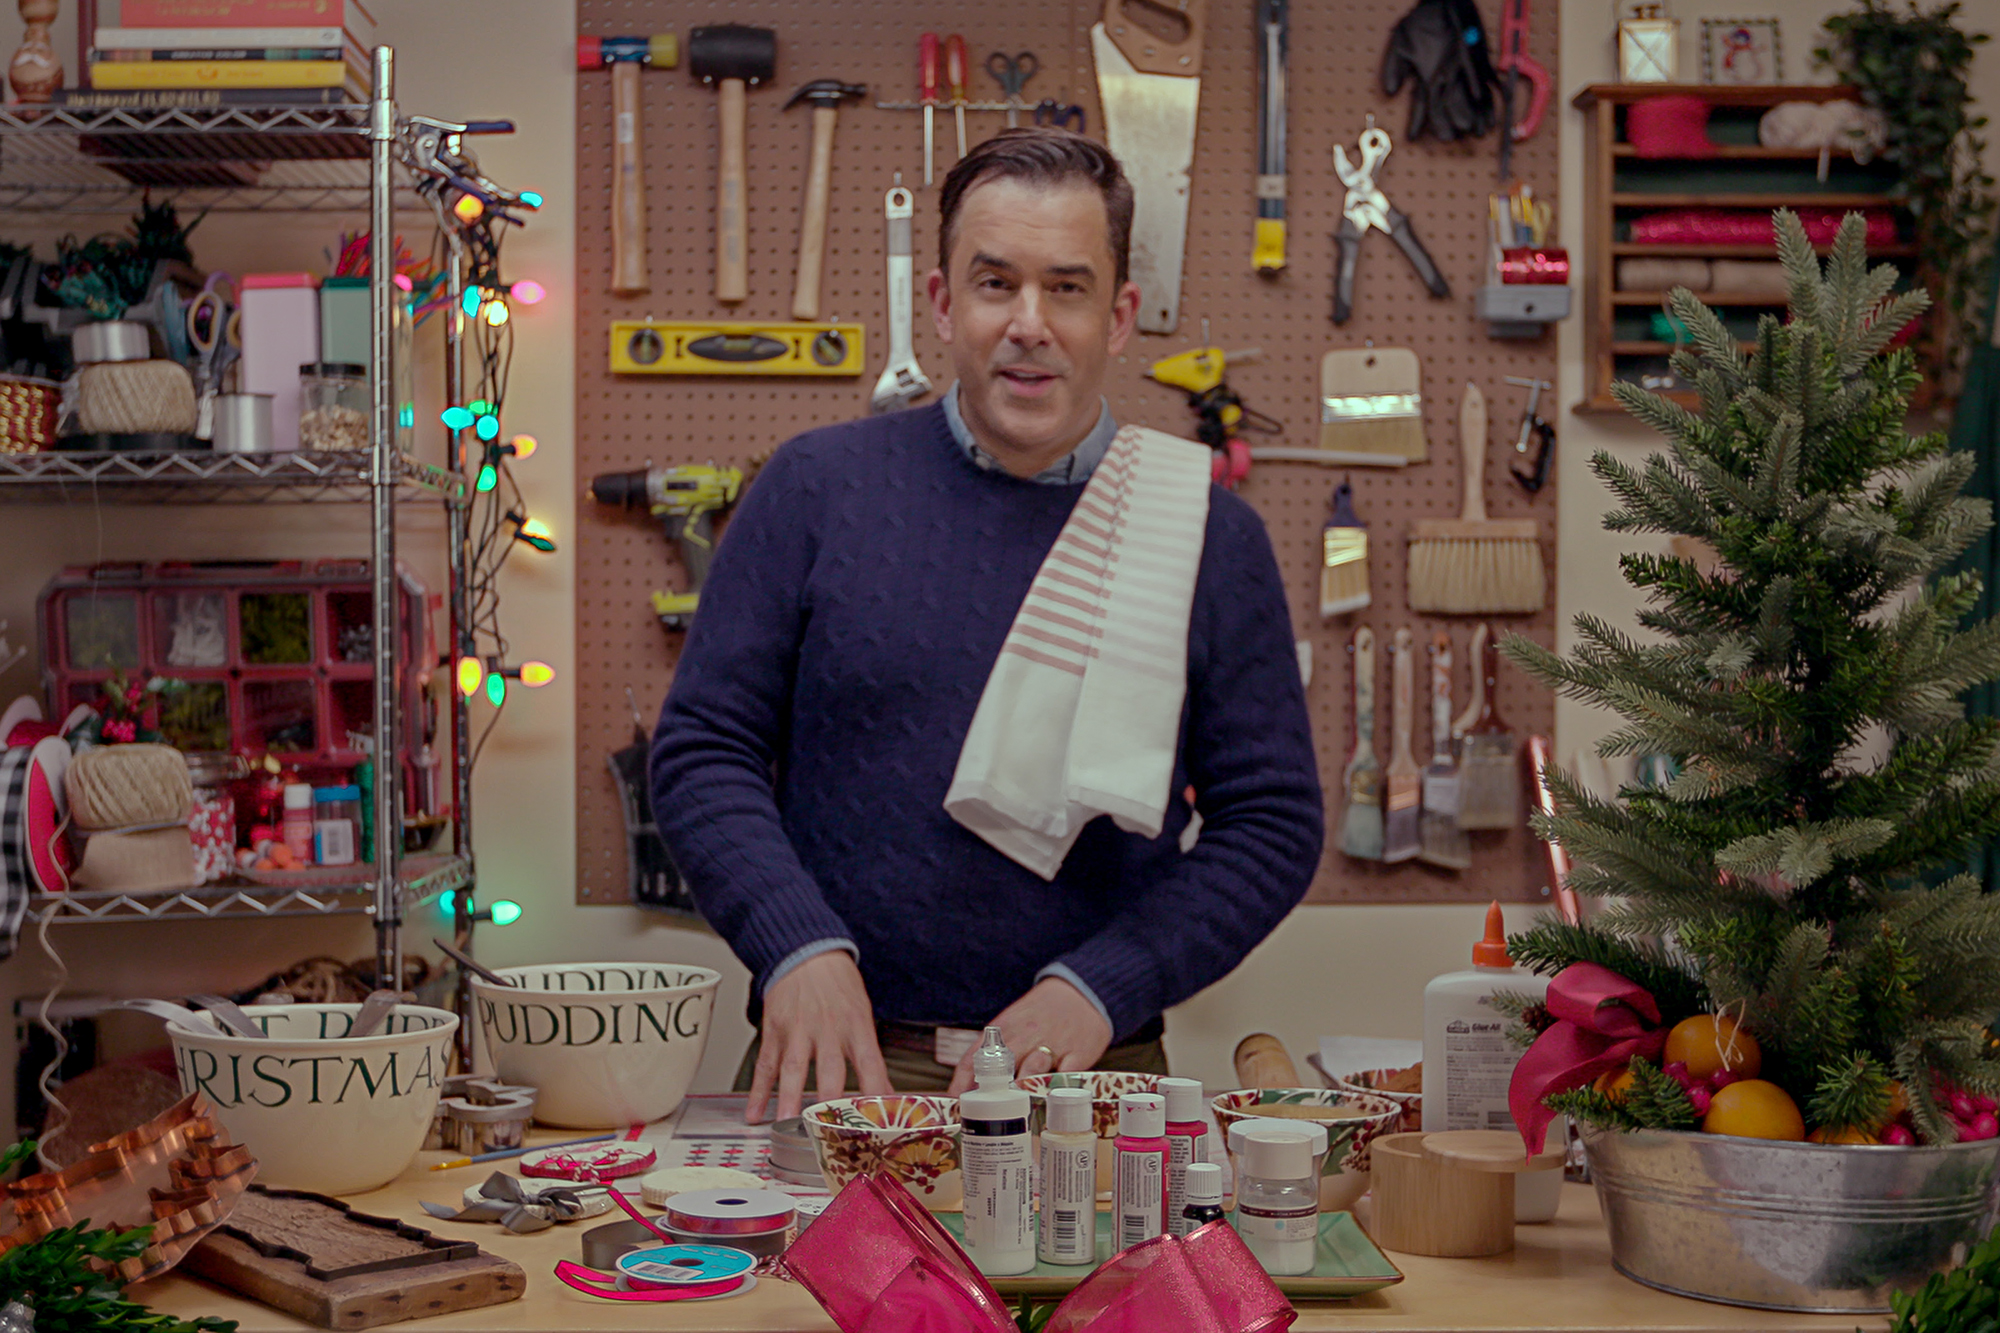 'Mr. Christmas' Benjamin Bradley shares 5 holiday decor ideas